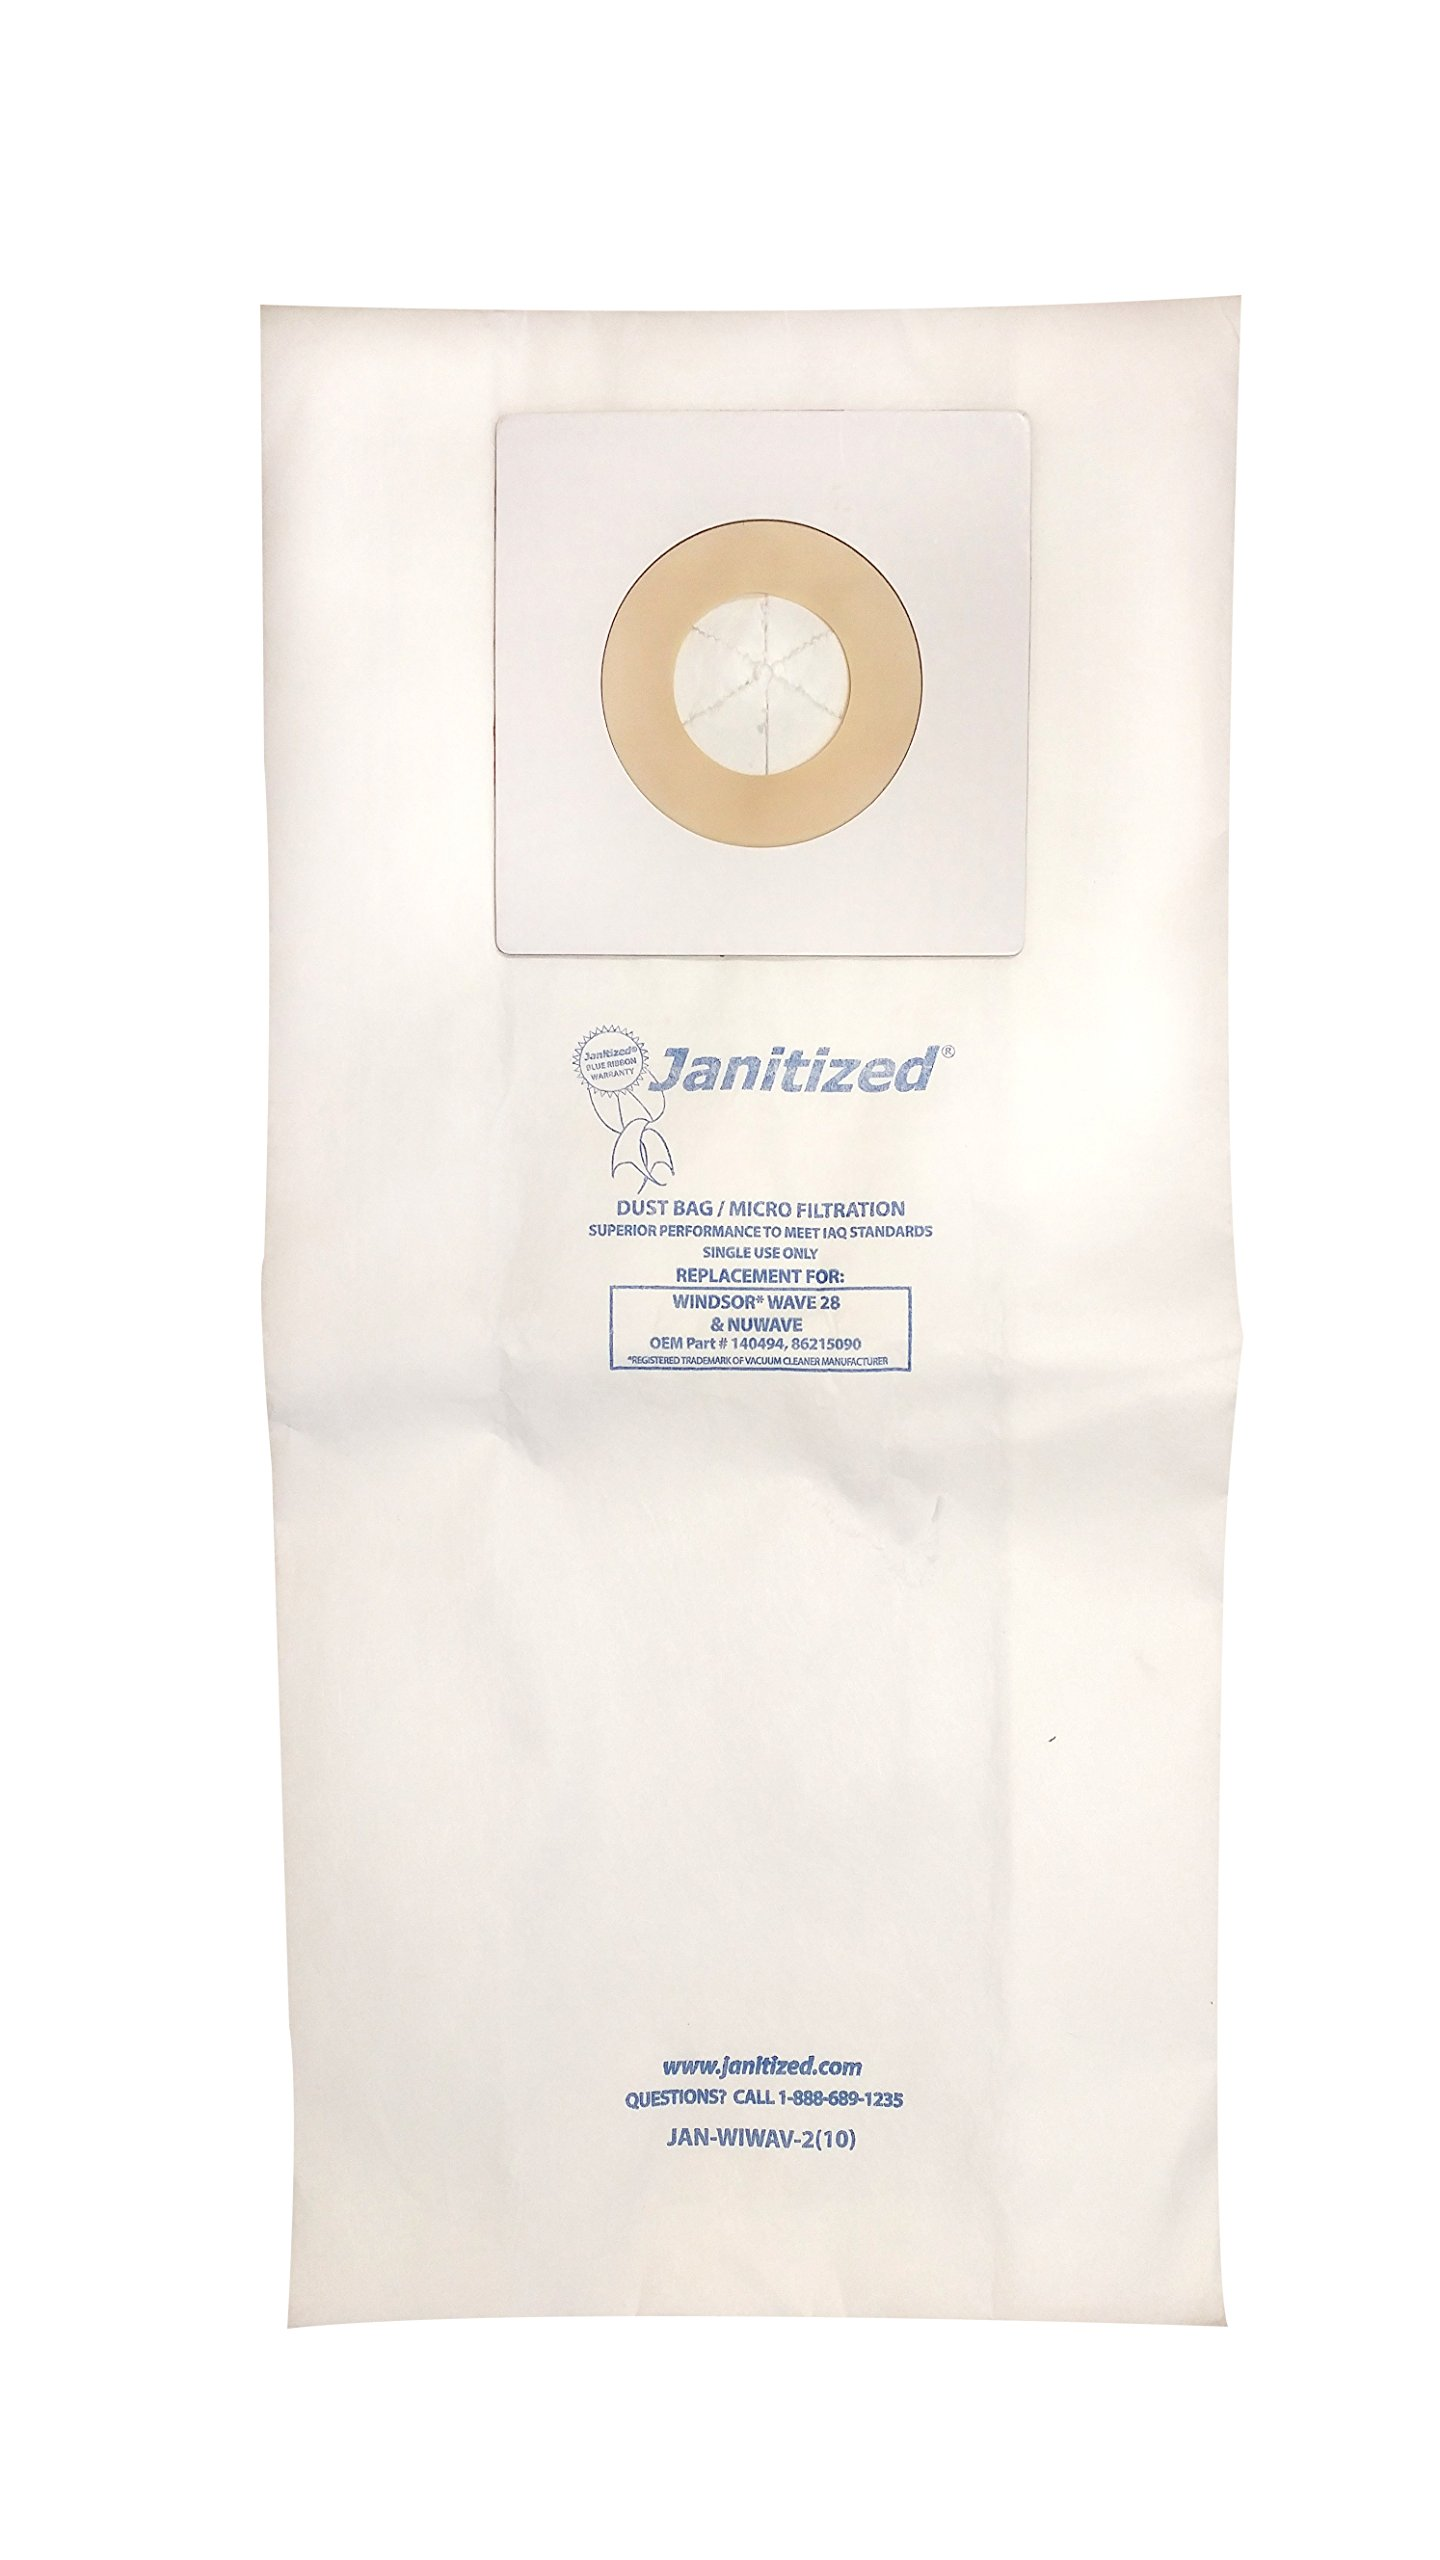 Janitized JAN-WIWAV-2(10) Premium Replacement Commercial Vacuum Paper Bag for Windsor Wave 28'', Vacuum Cleaners, OEM#140494, 86215090 (Pack of 10)